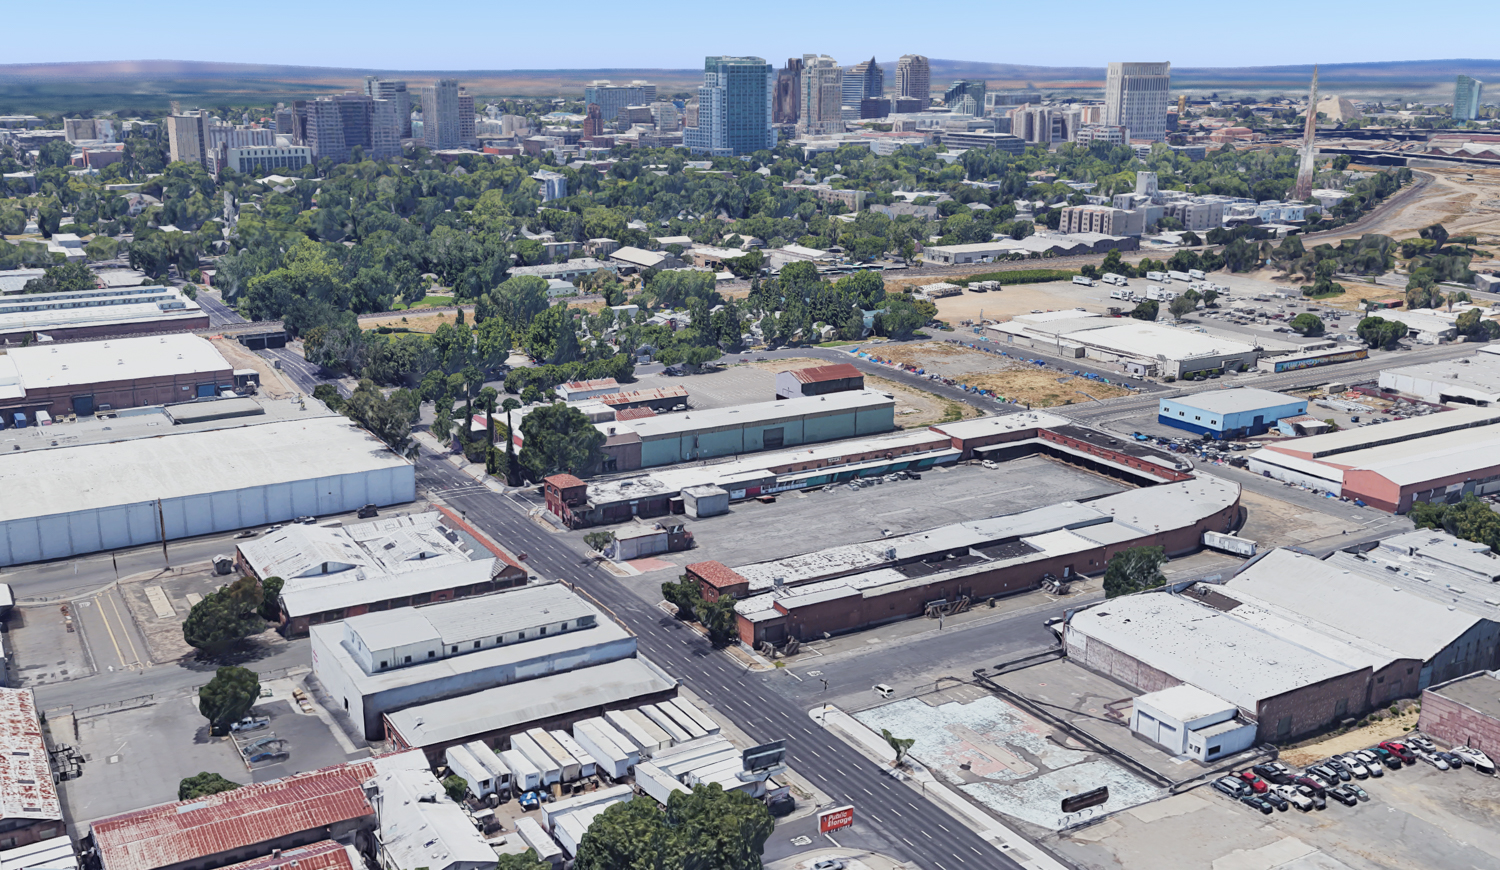 200, 211, and 215 North 16th Street with the Sacramento skyline in the background, image via Google Satellite